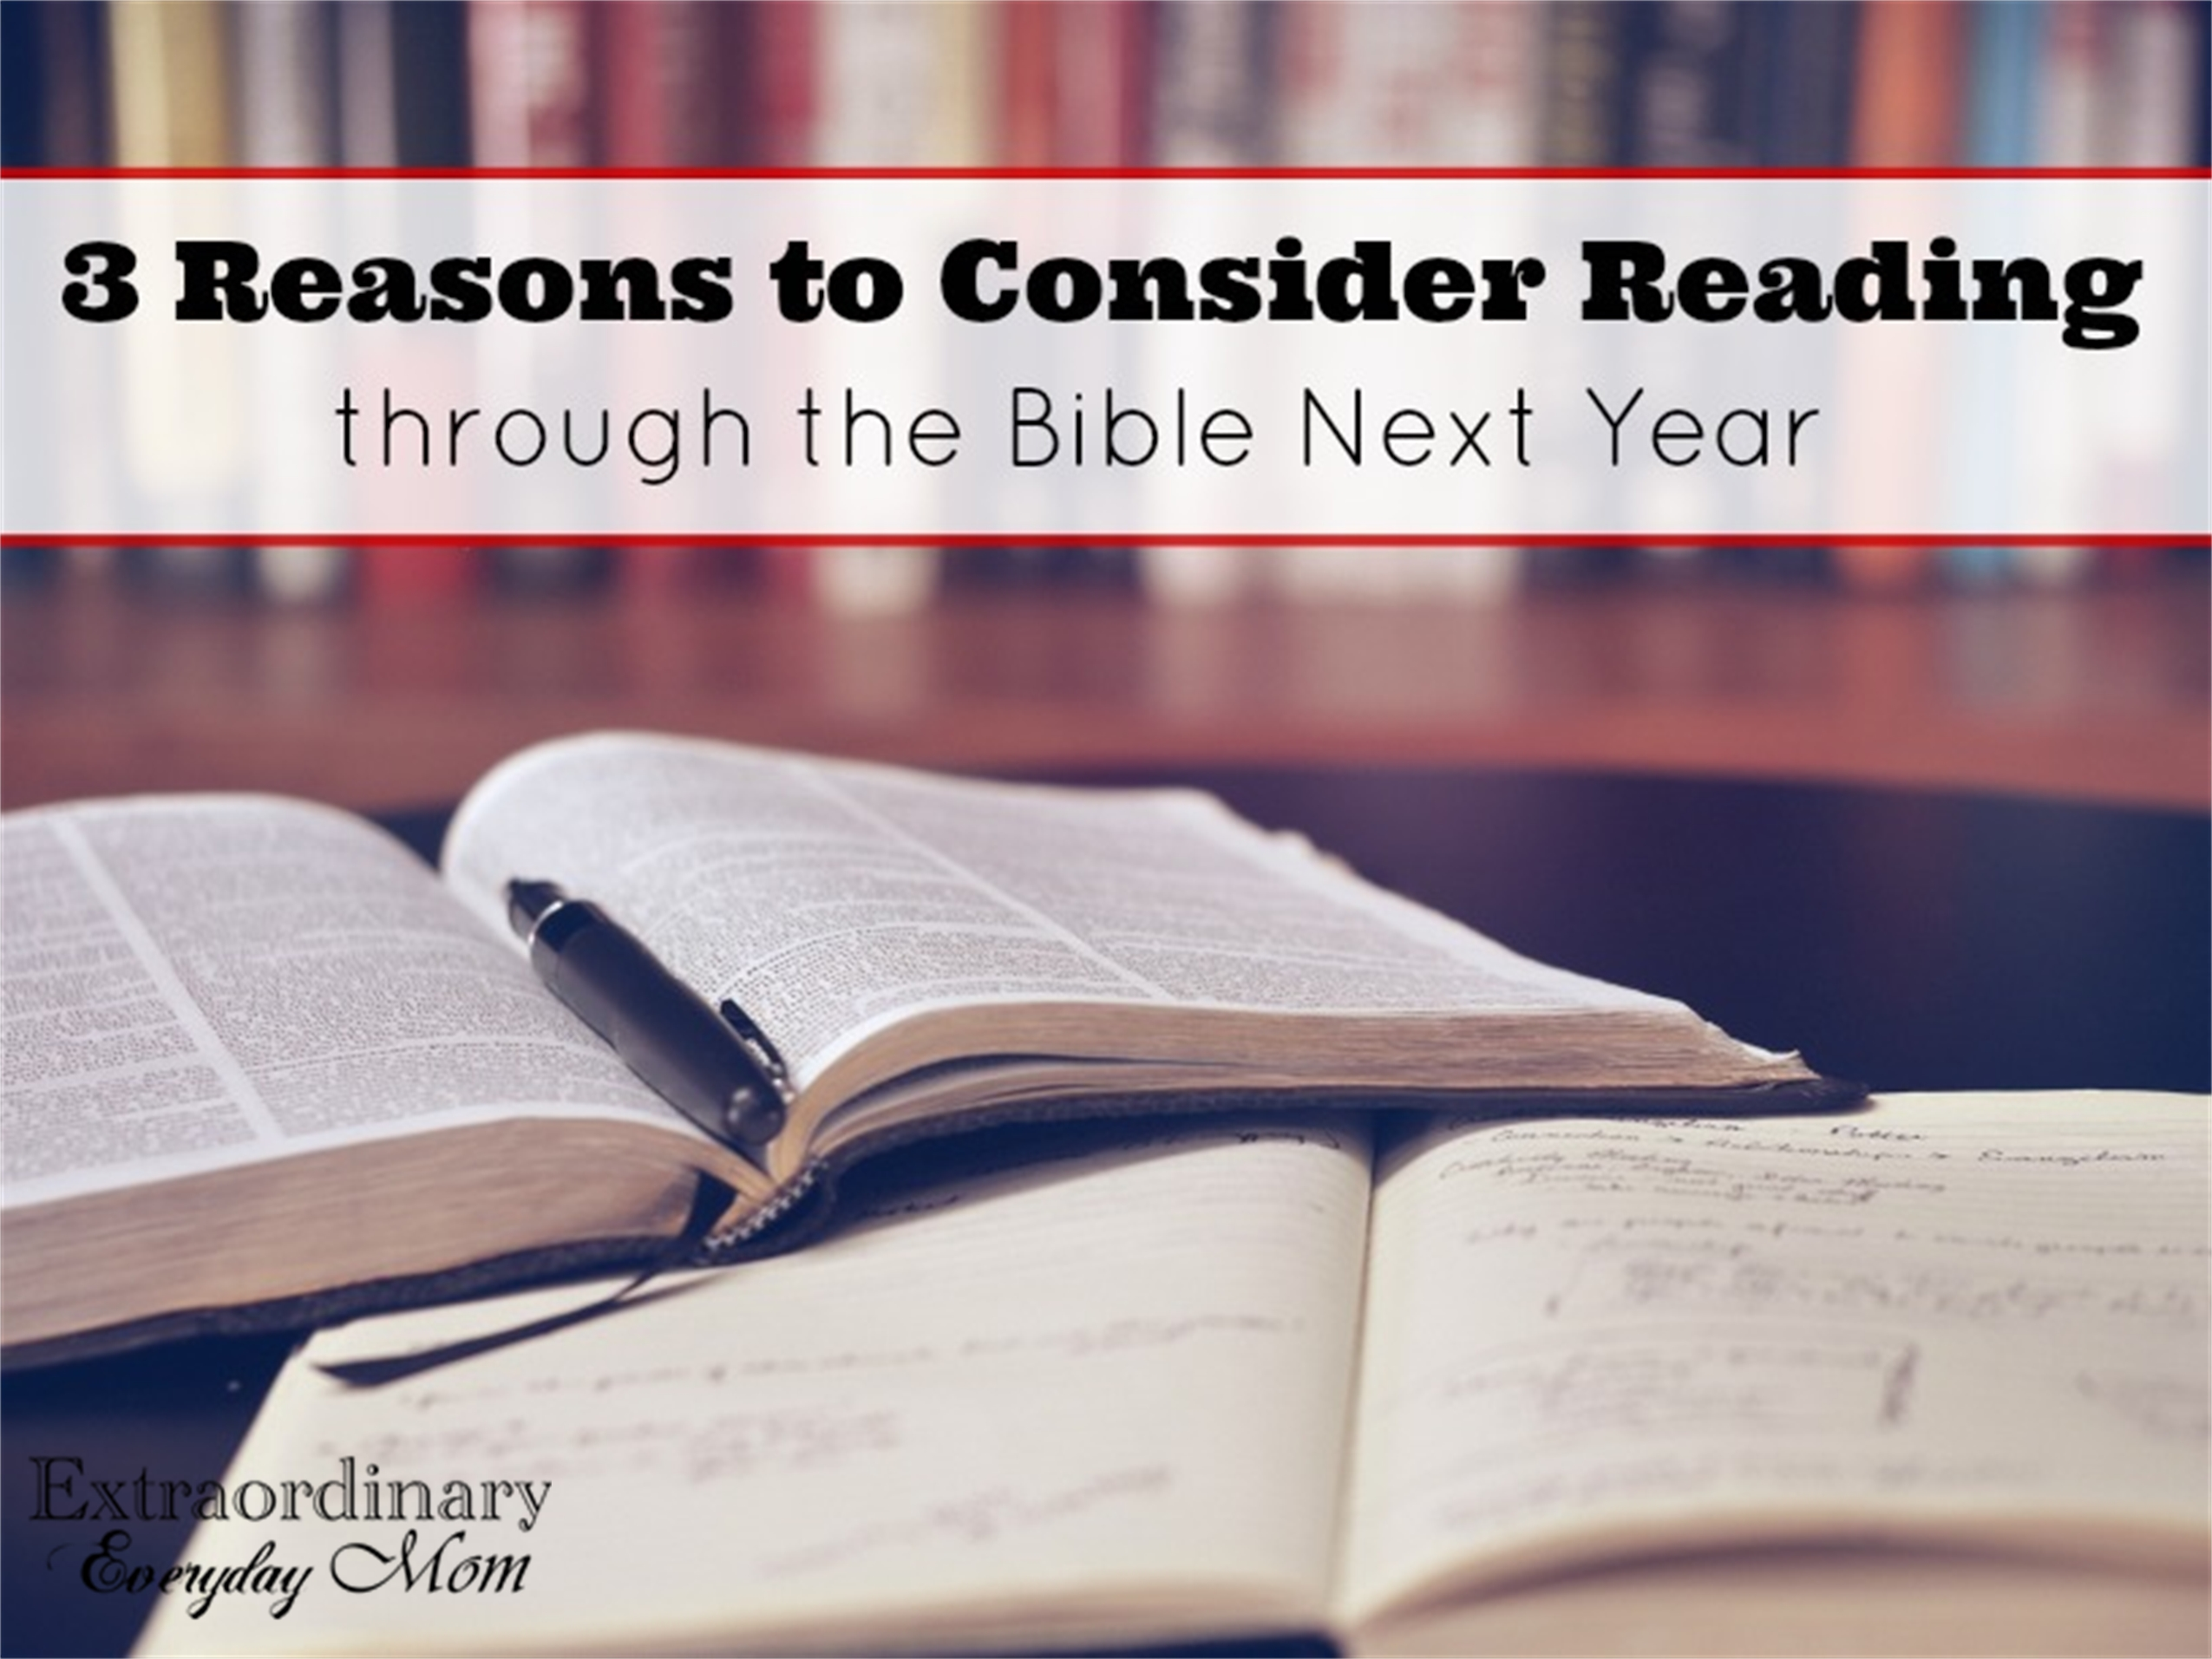 3 Reasons to Consider Reading Through the Bible Next Year